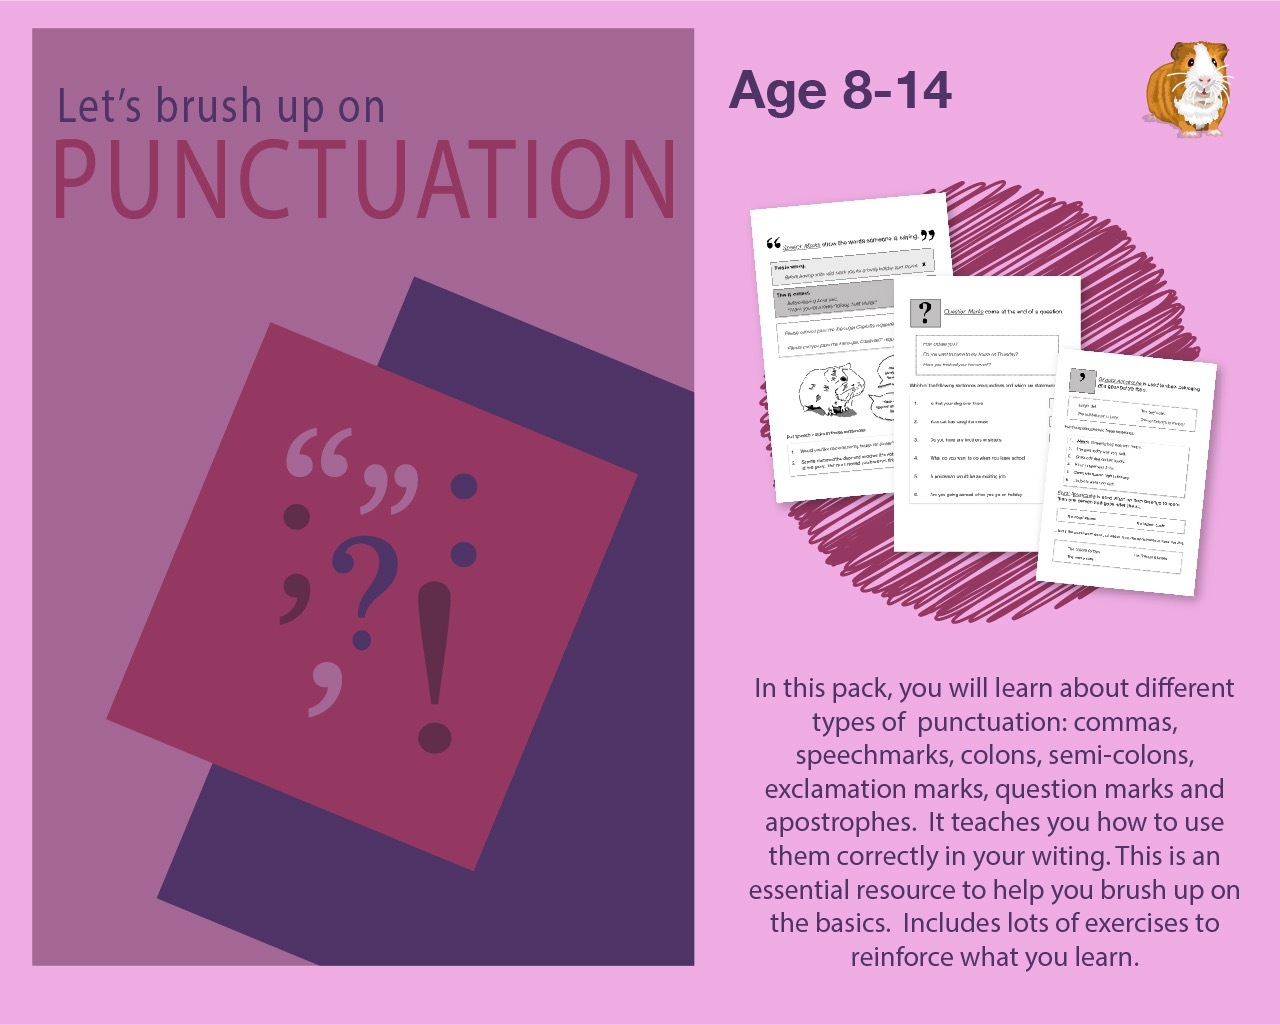 Brush Up On Punctuation (9-14 years)